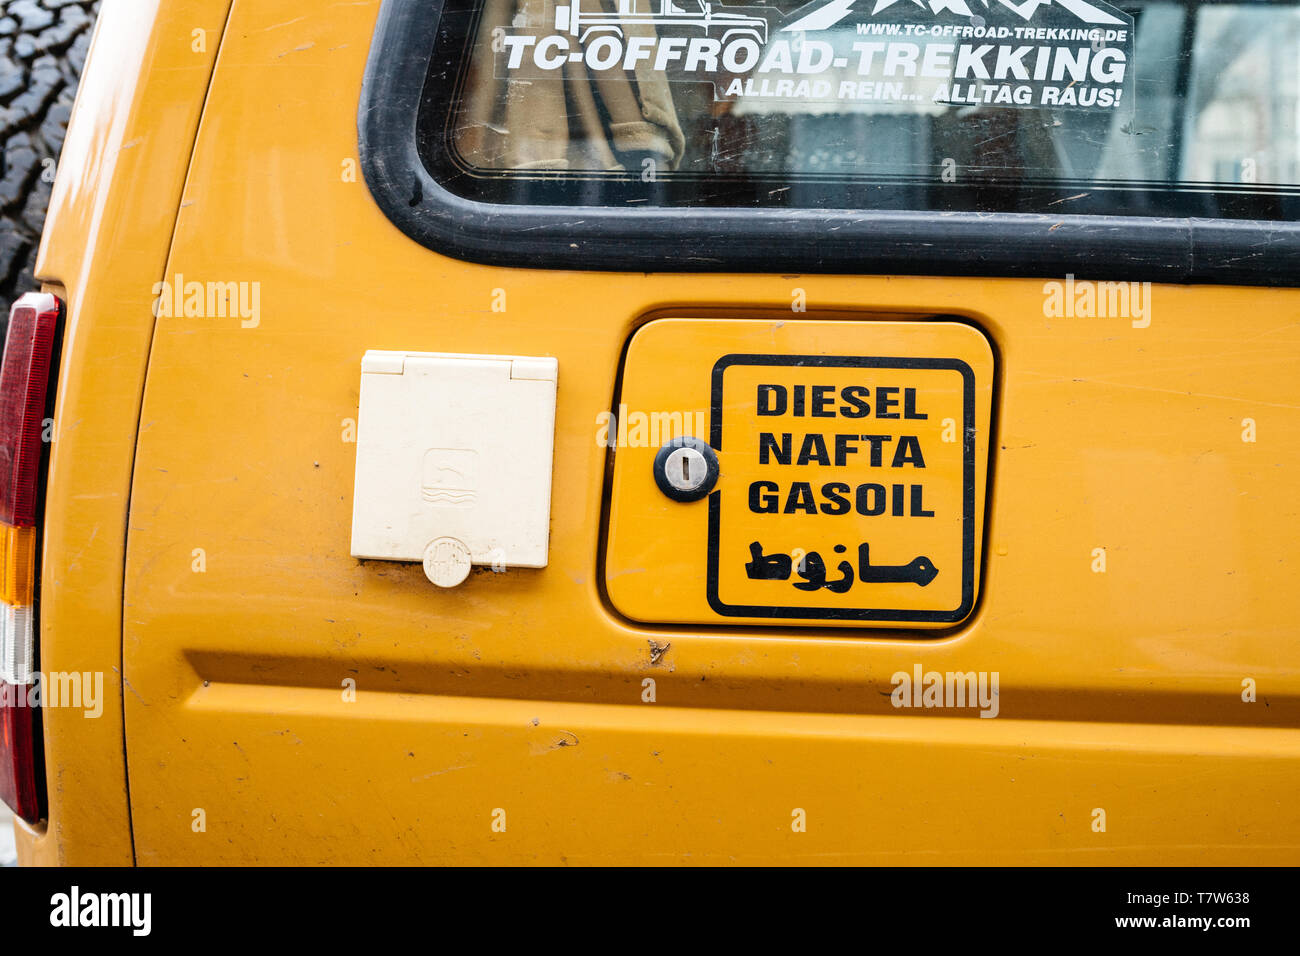 Strasbourg, France - Dec 27, 2017: New vintage yellow Land Rover Defender Camel Trophy with Diesel, Nafta Gasoil and arabic script detail on the gas tank Stock Photo